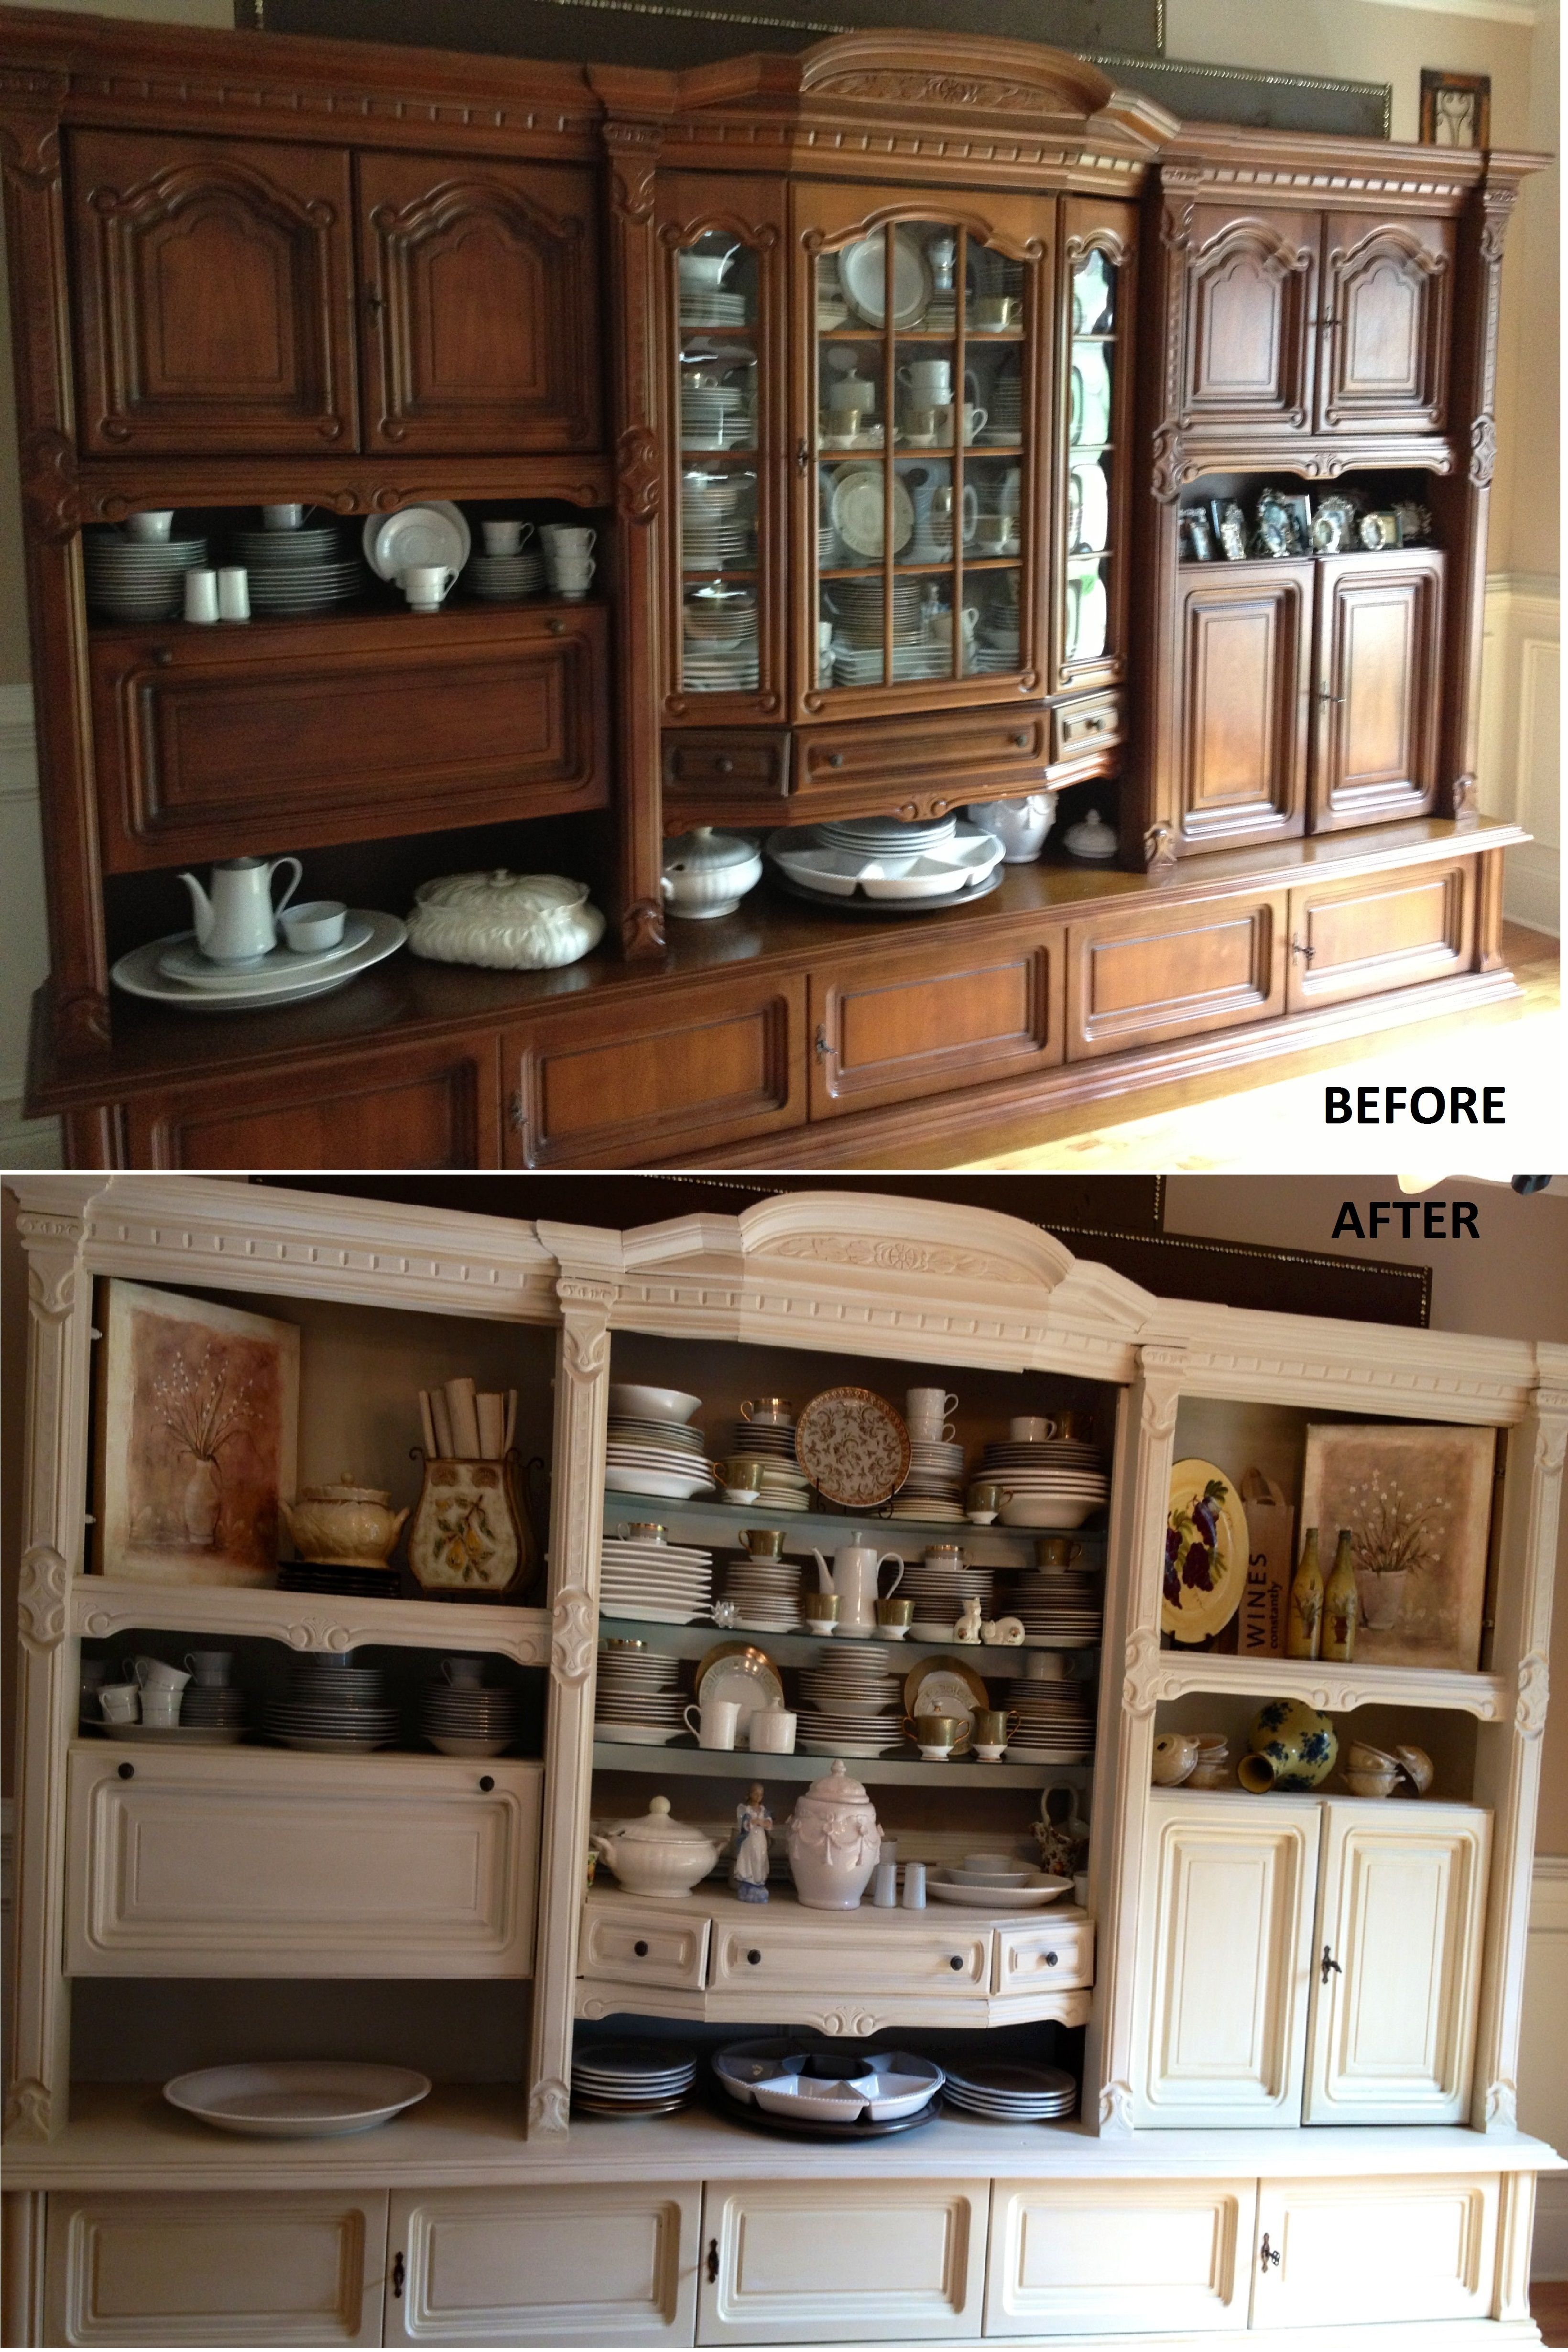 Antique German Shrunk Re-Design! From Traditional to Shabby | Josh ...